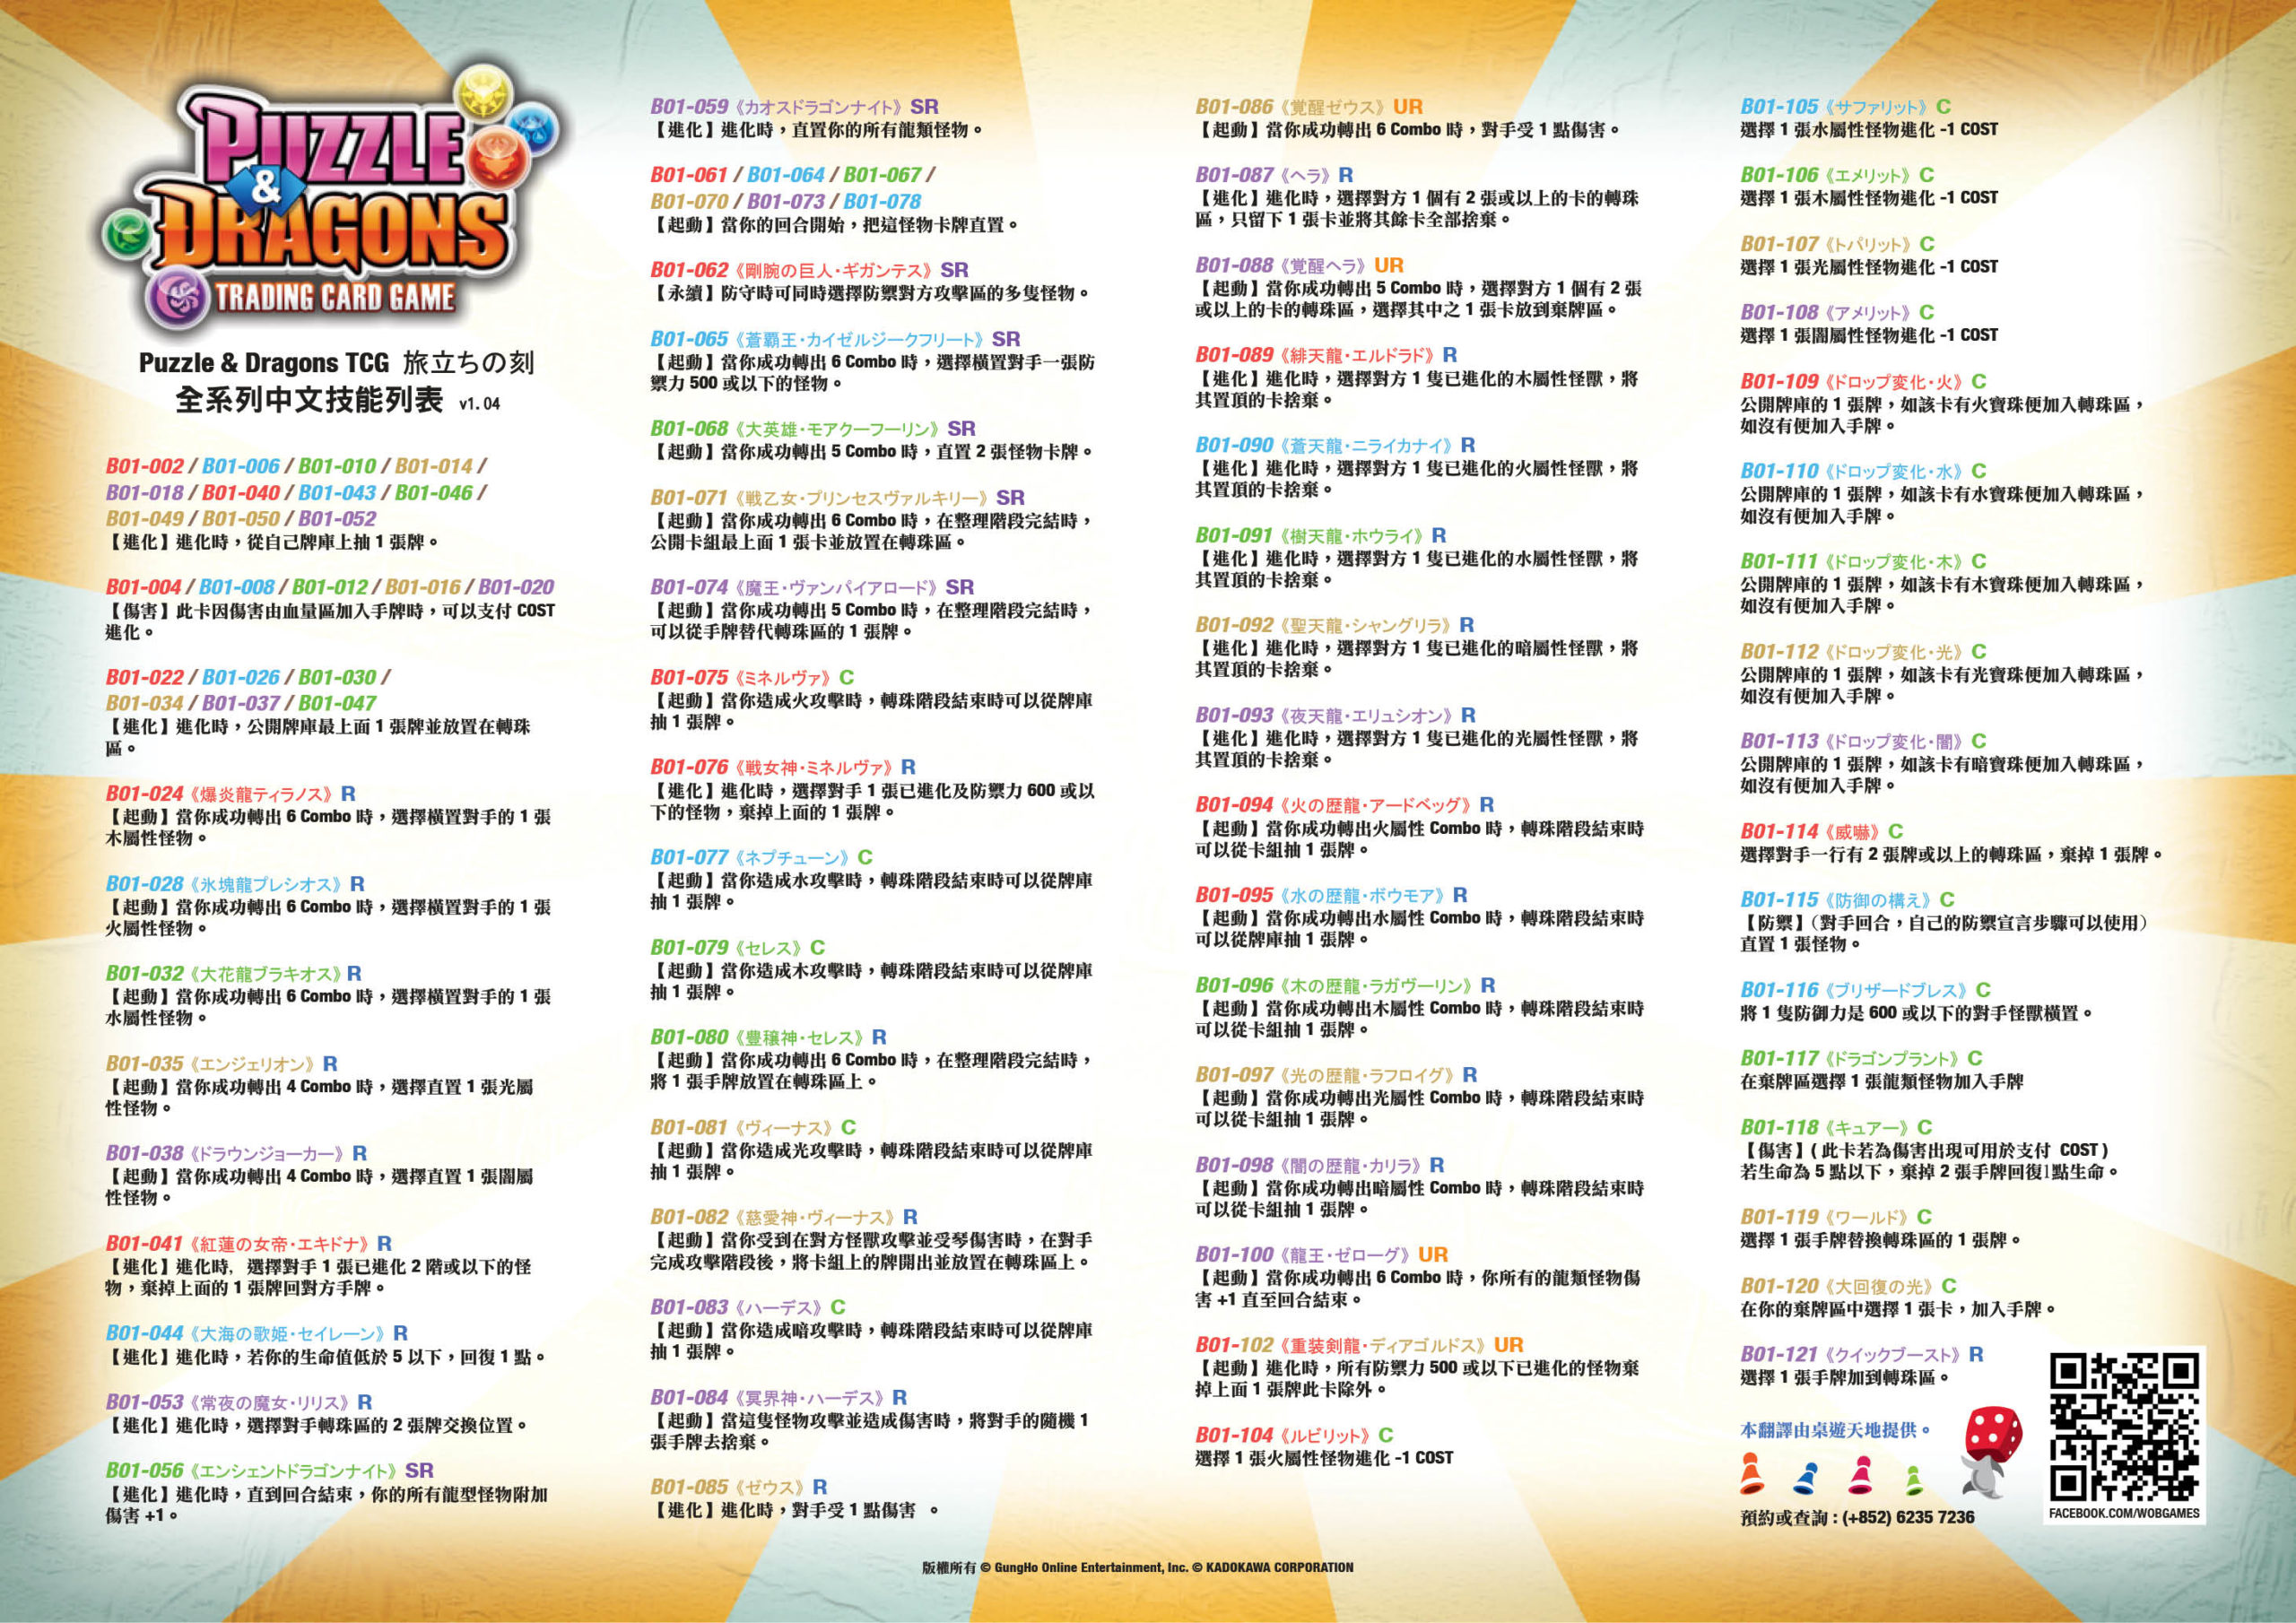 Puzzle & Dragons Cheat Sheet |香港桌遊天地Welcome On Board Hong Kong